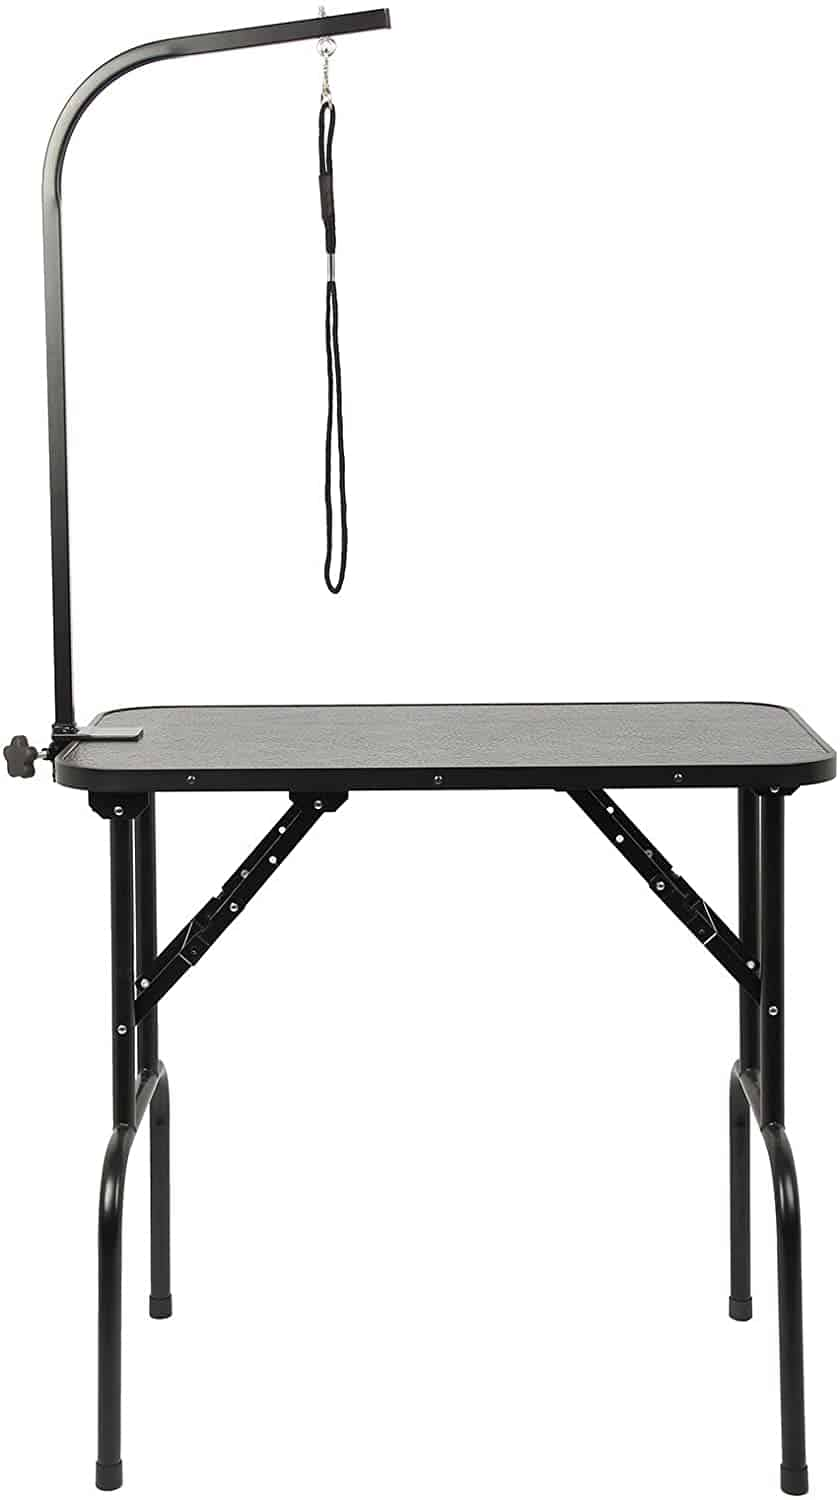 Allright grooming table